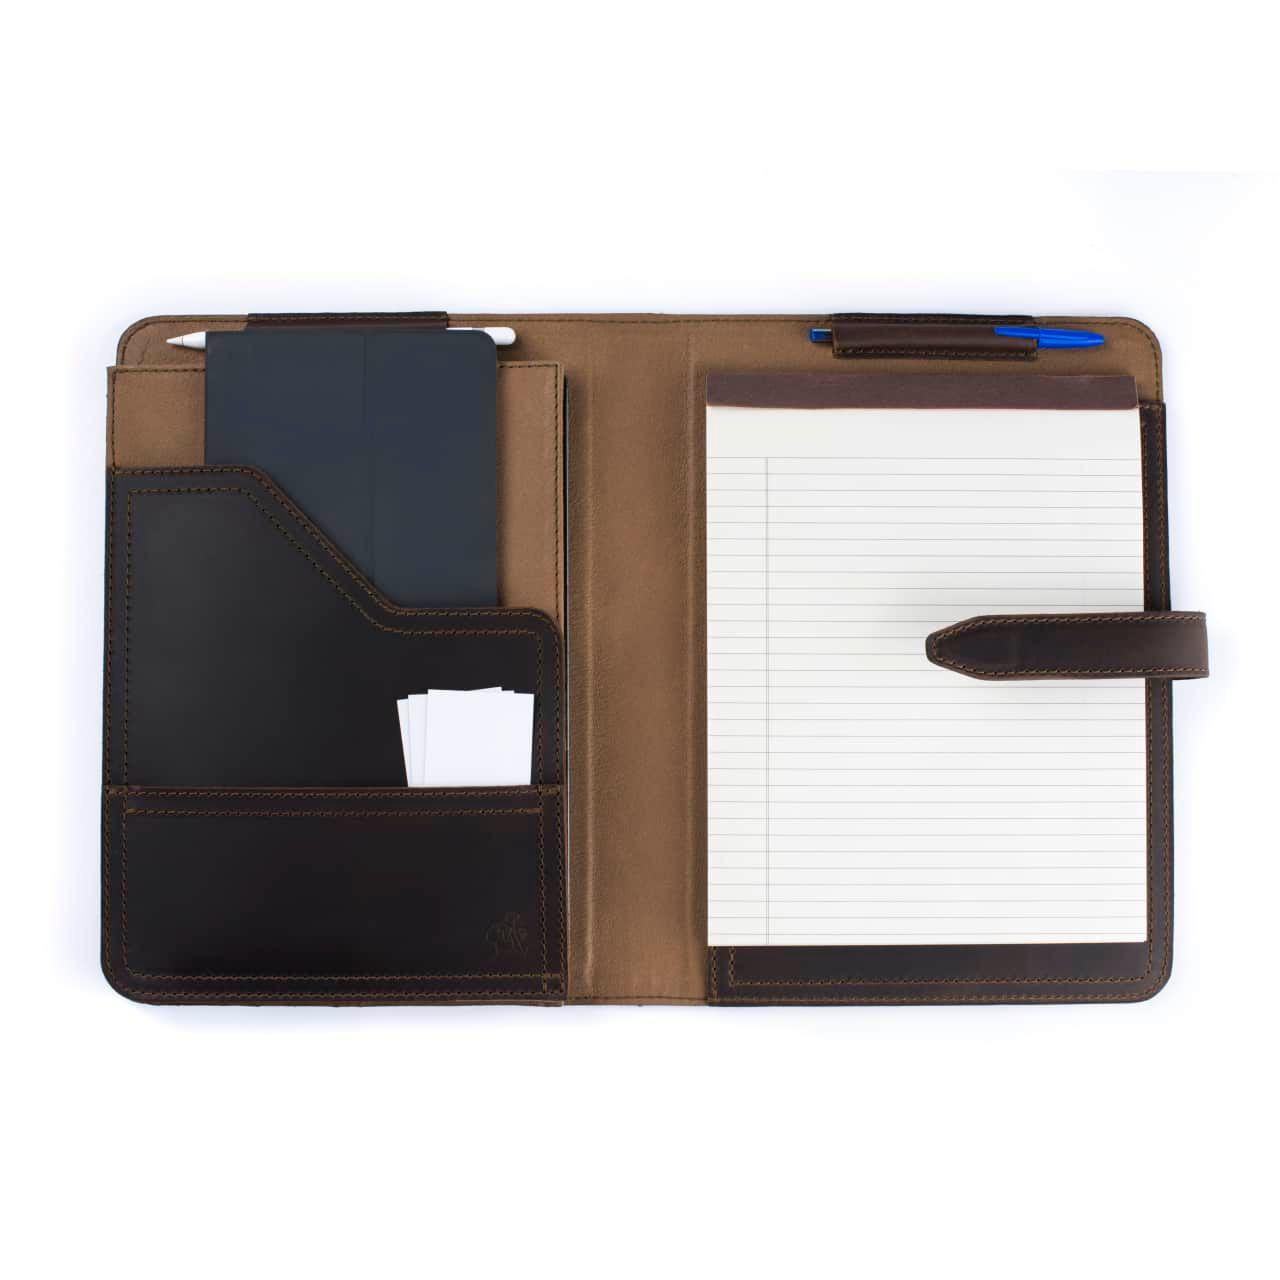 Leather Tablet Notepad Holder Open with Noteopad and Pens in the Color Dark Coffee Brown